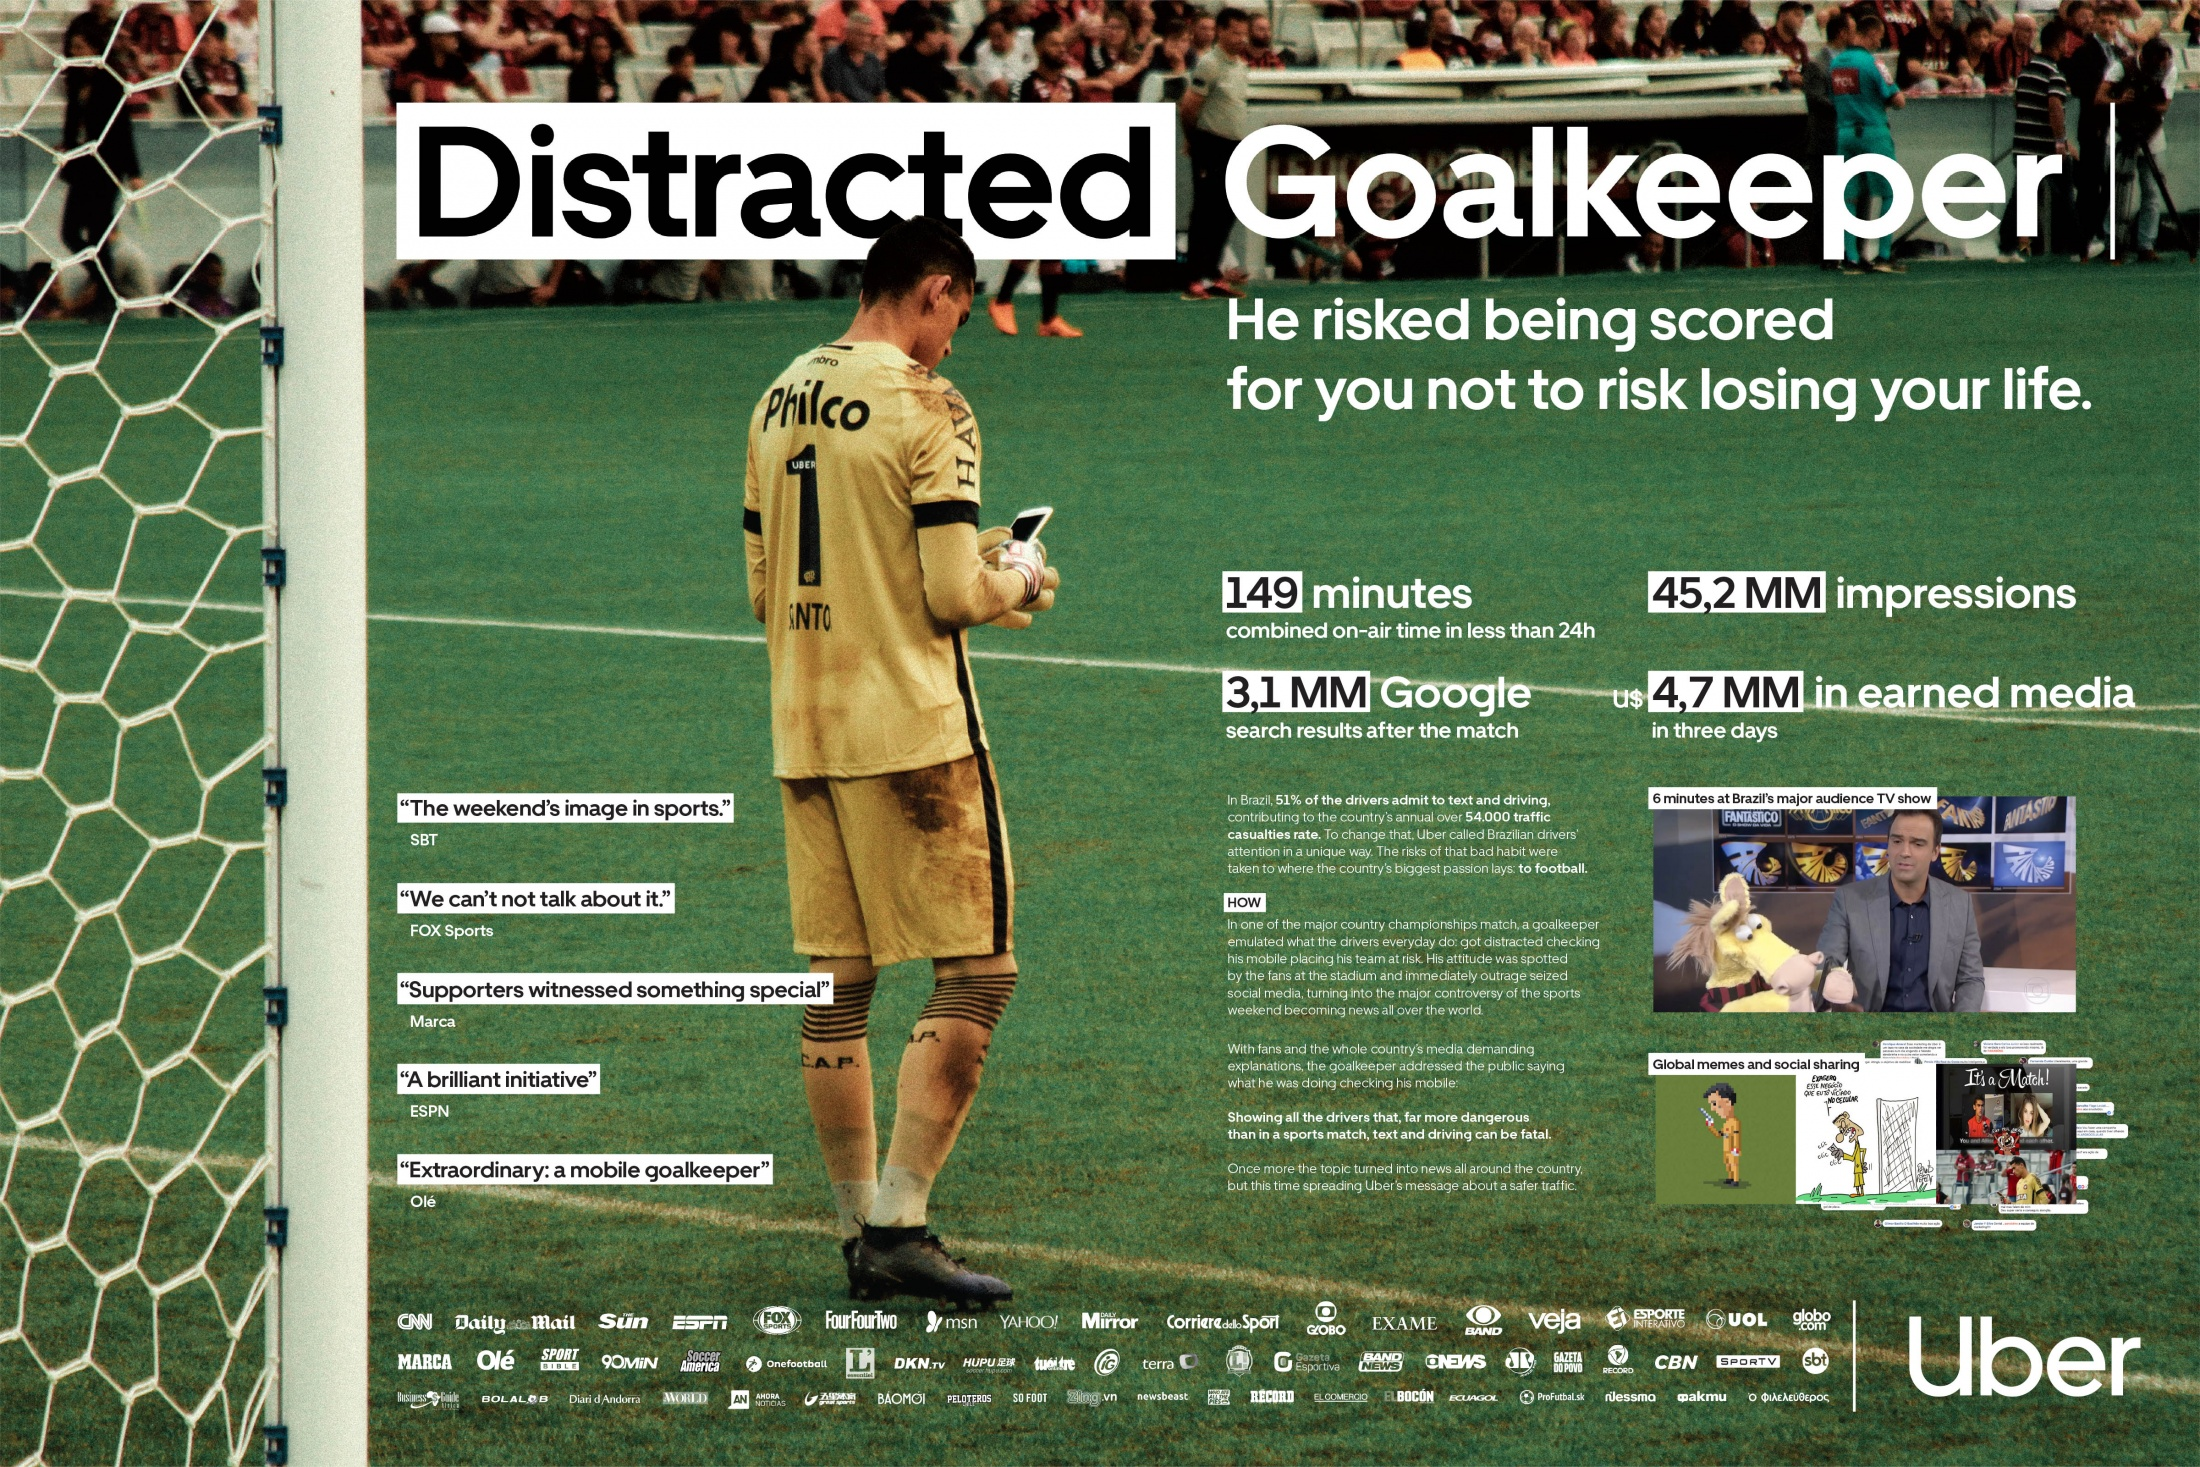 Image Media for Distracted Goalkeeper